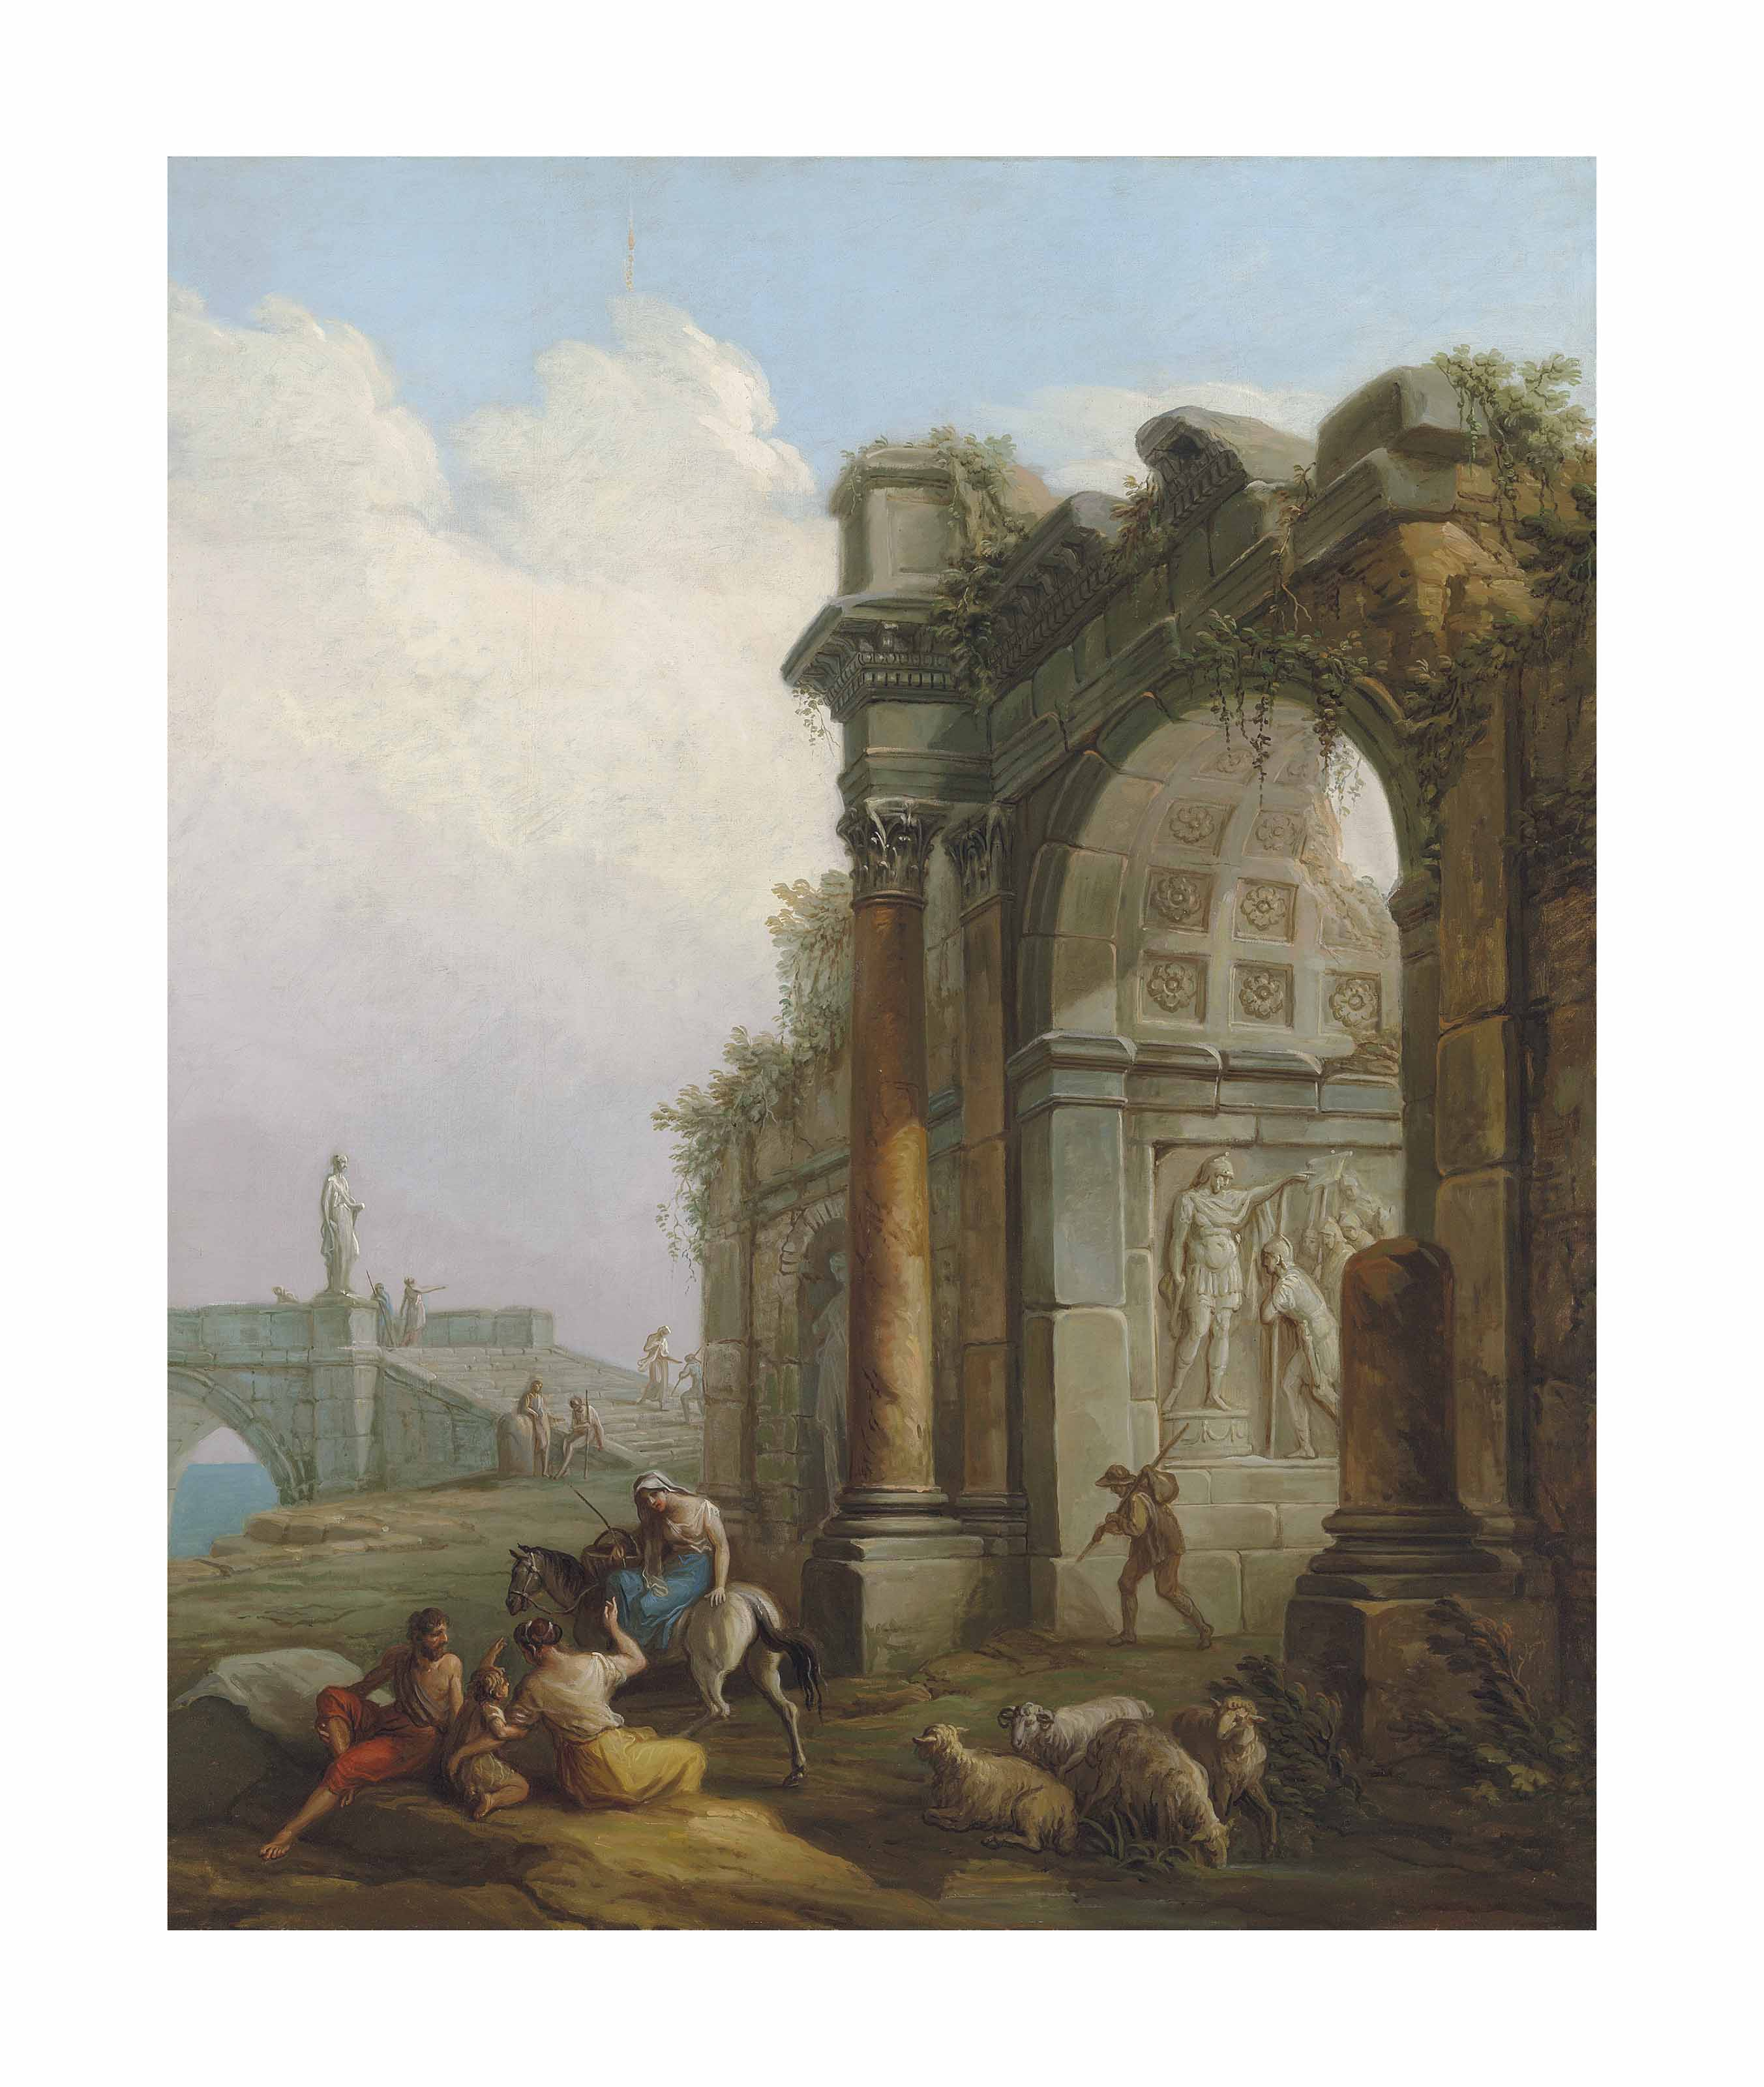 A ruined triumphal arch with figures conversing on path, a bridge beyond